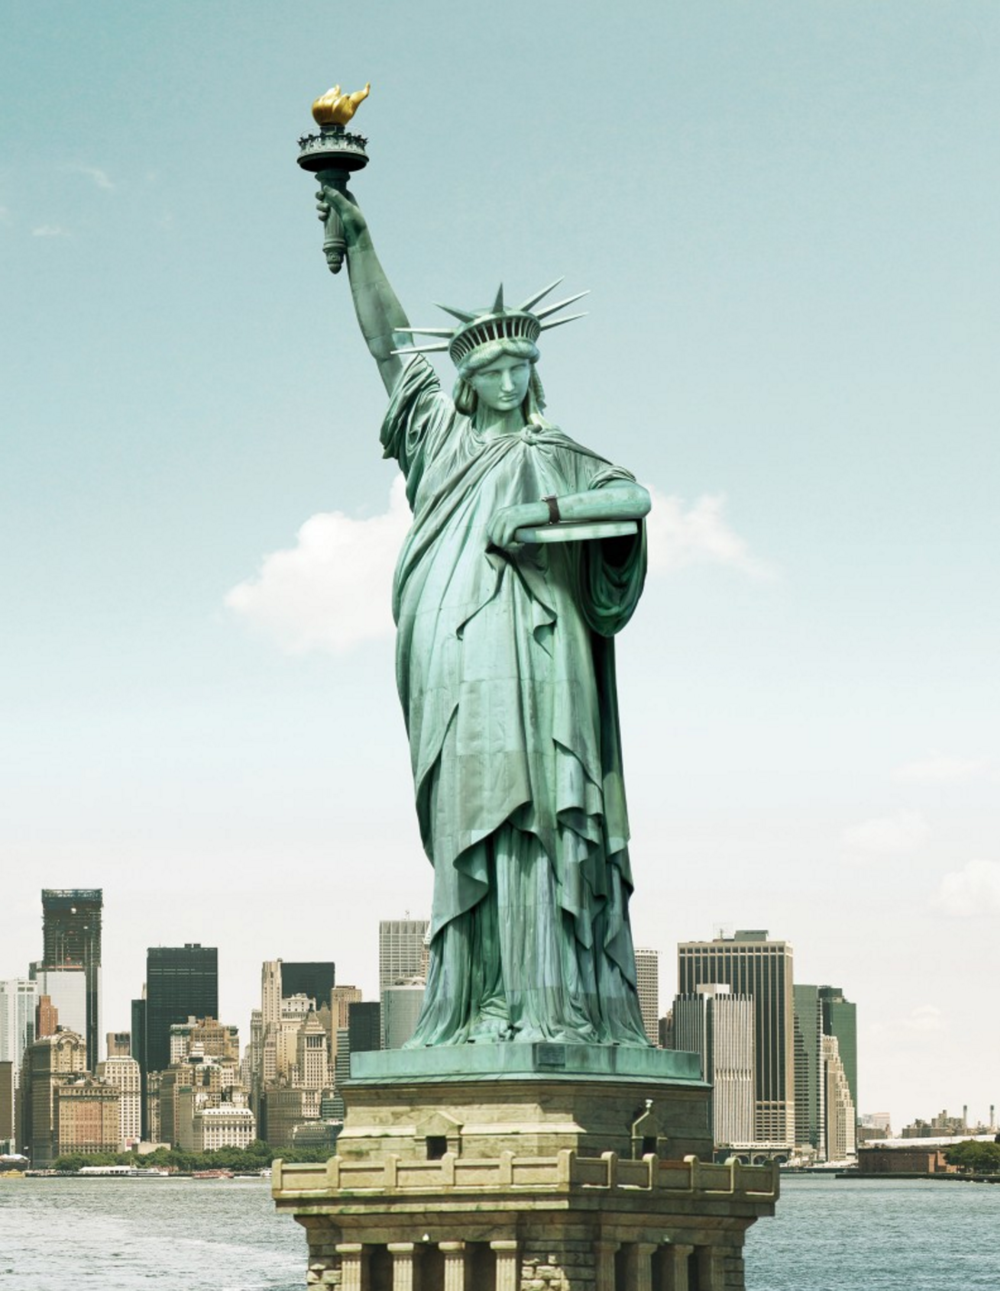 Emirates – Statue of Liberty